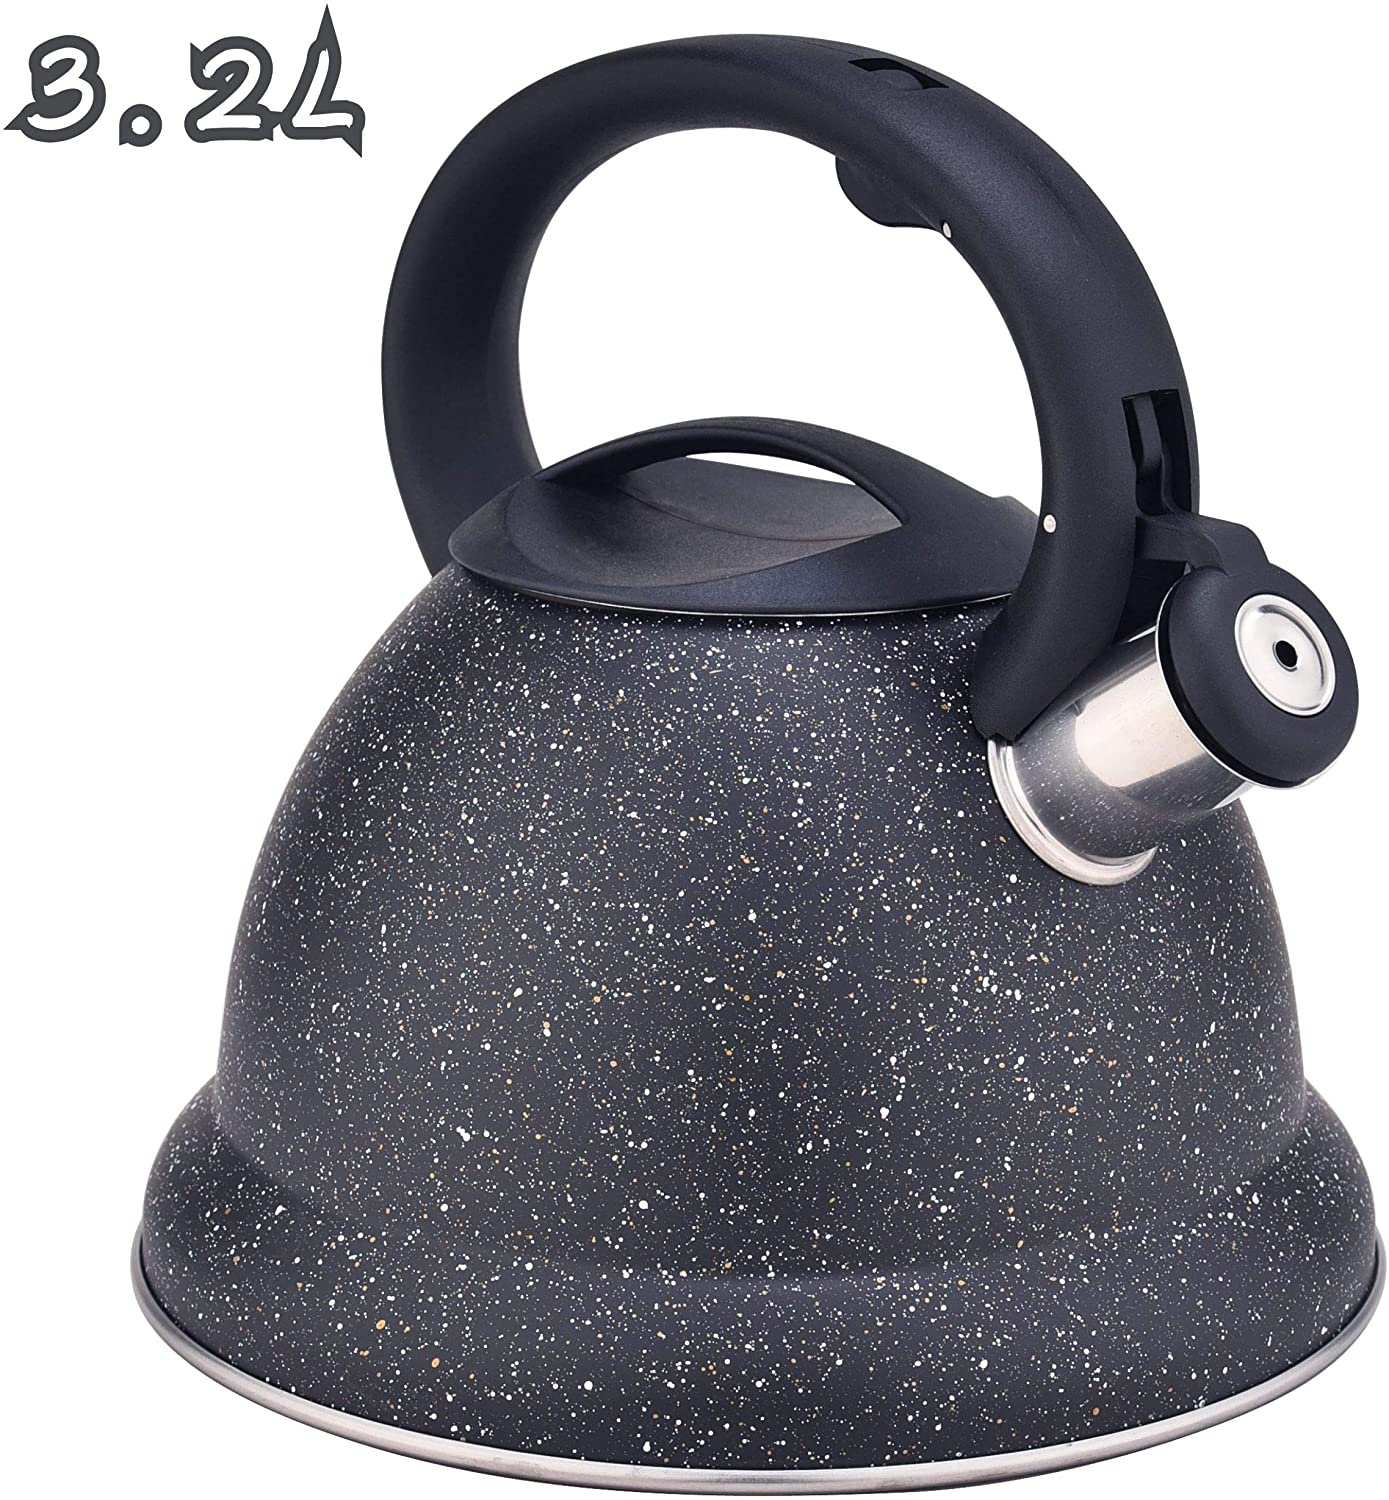 ARC USA Tea Durable Black Stove Top Tea kettle, Food Grade Stove Tea Pot with Heat Resistance Handle, Anti-Rust and Loud Whistling, Stainless Steel Tea kettle for Stovetop, (3.2L)